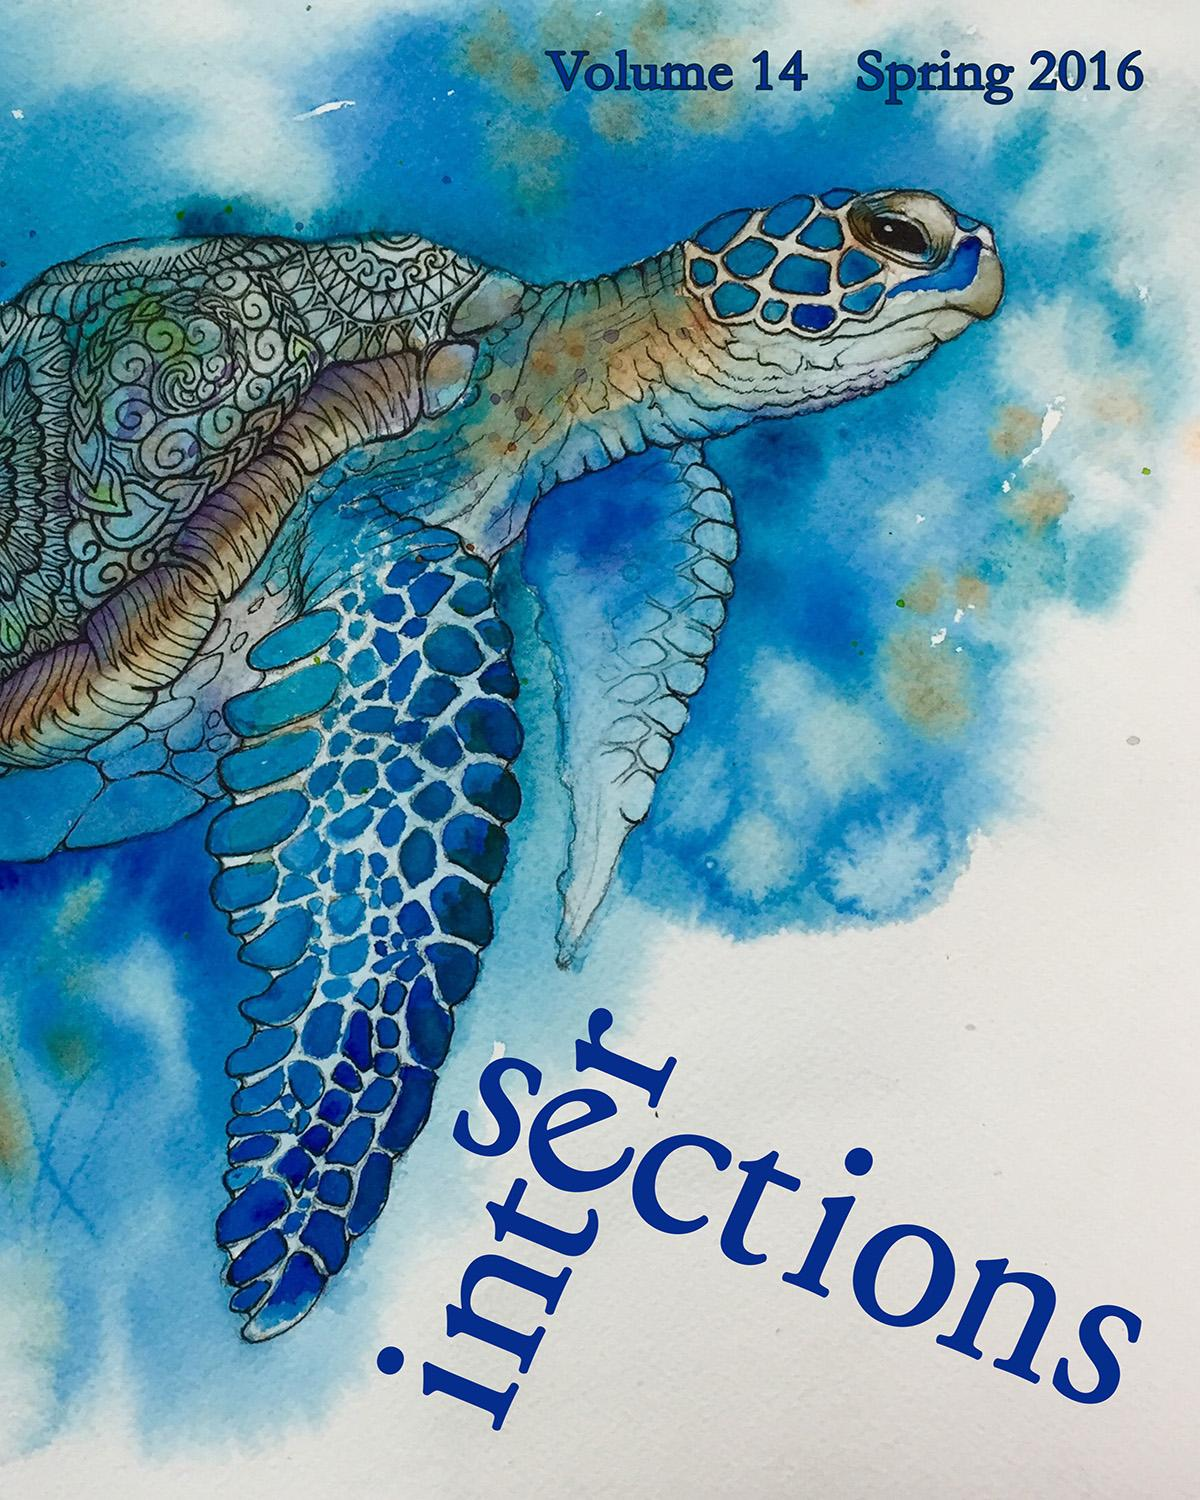 Intersections Volume 14 Issue 1